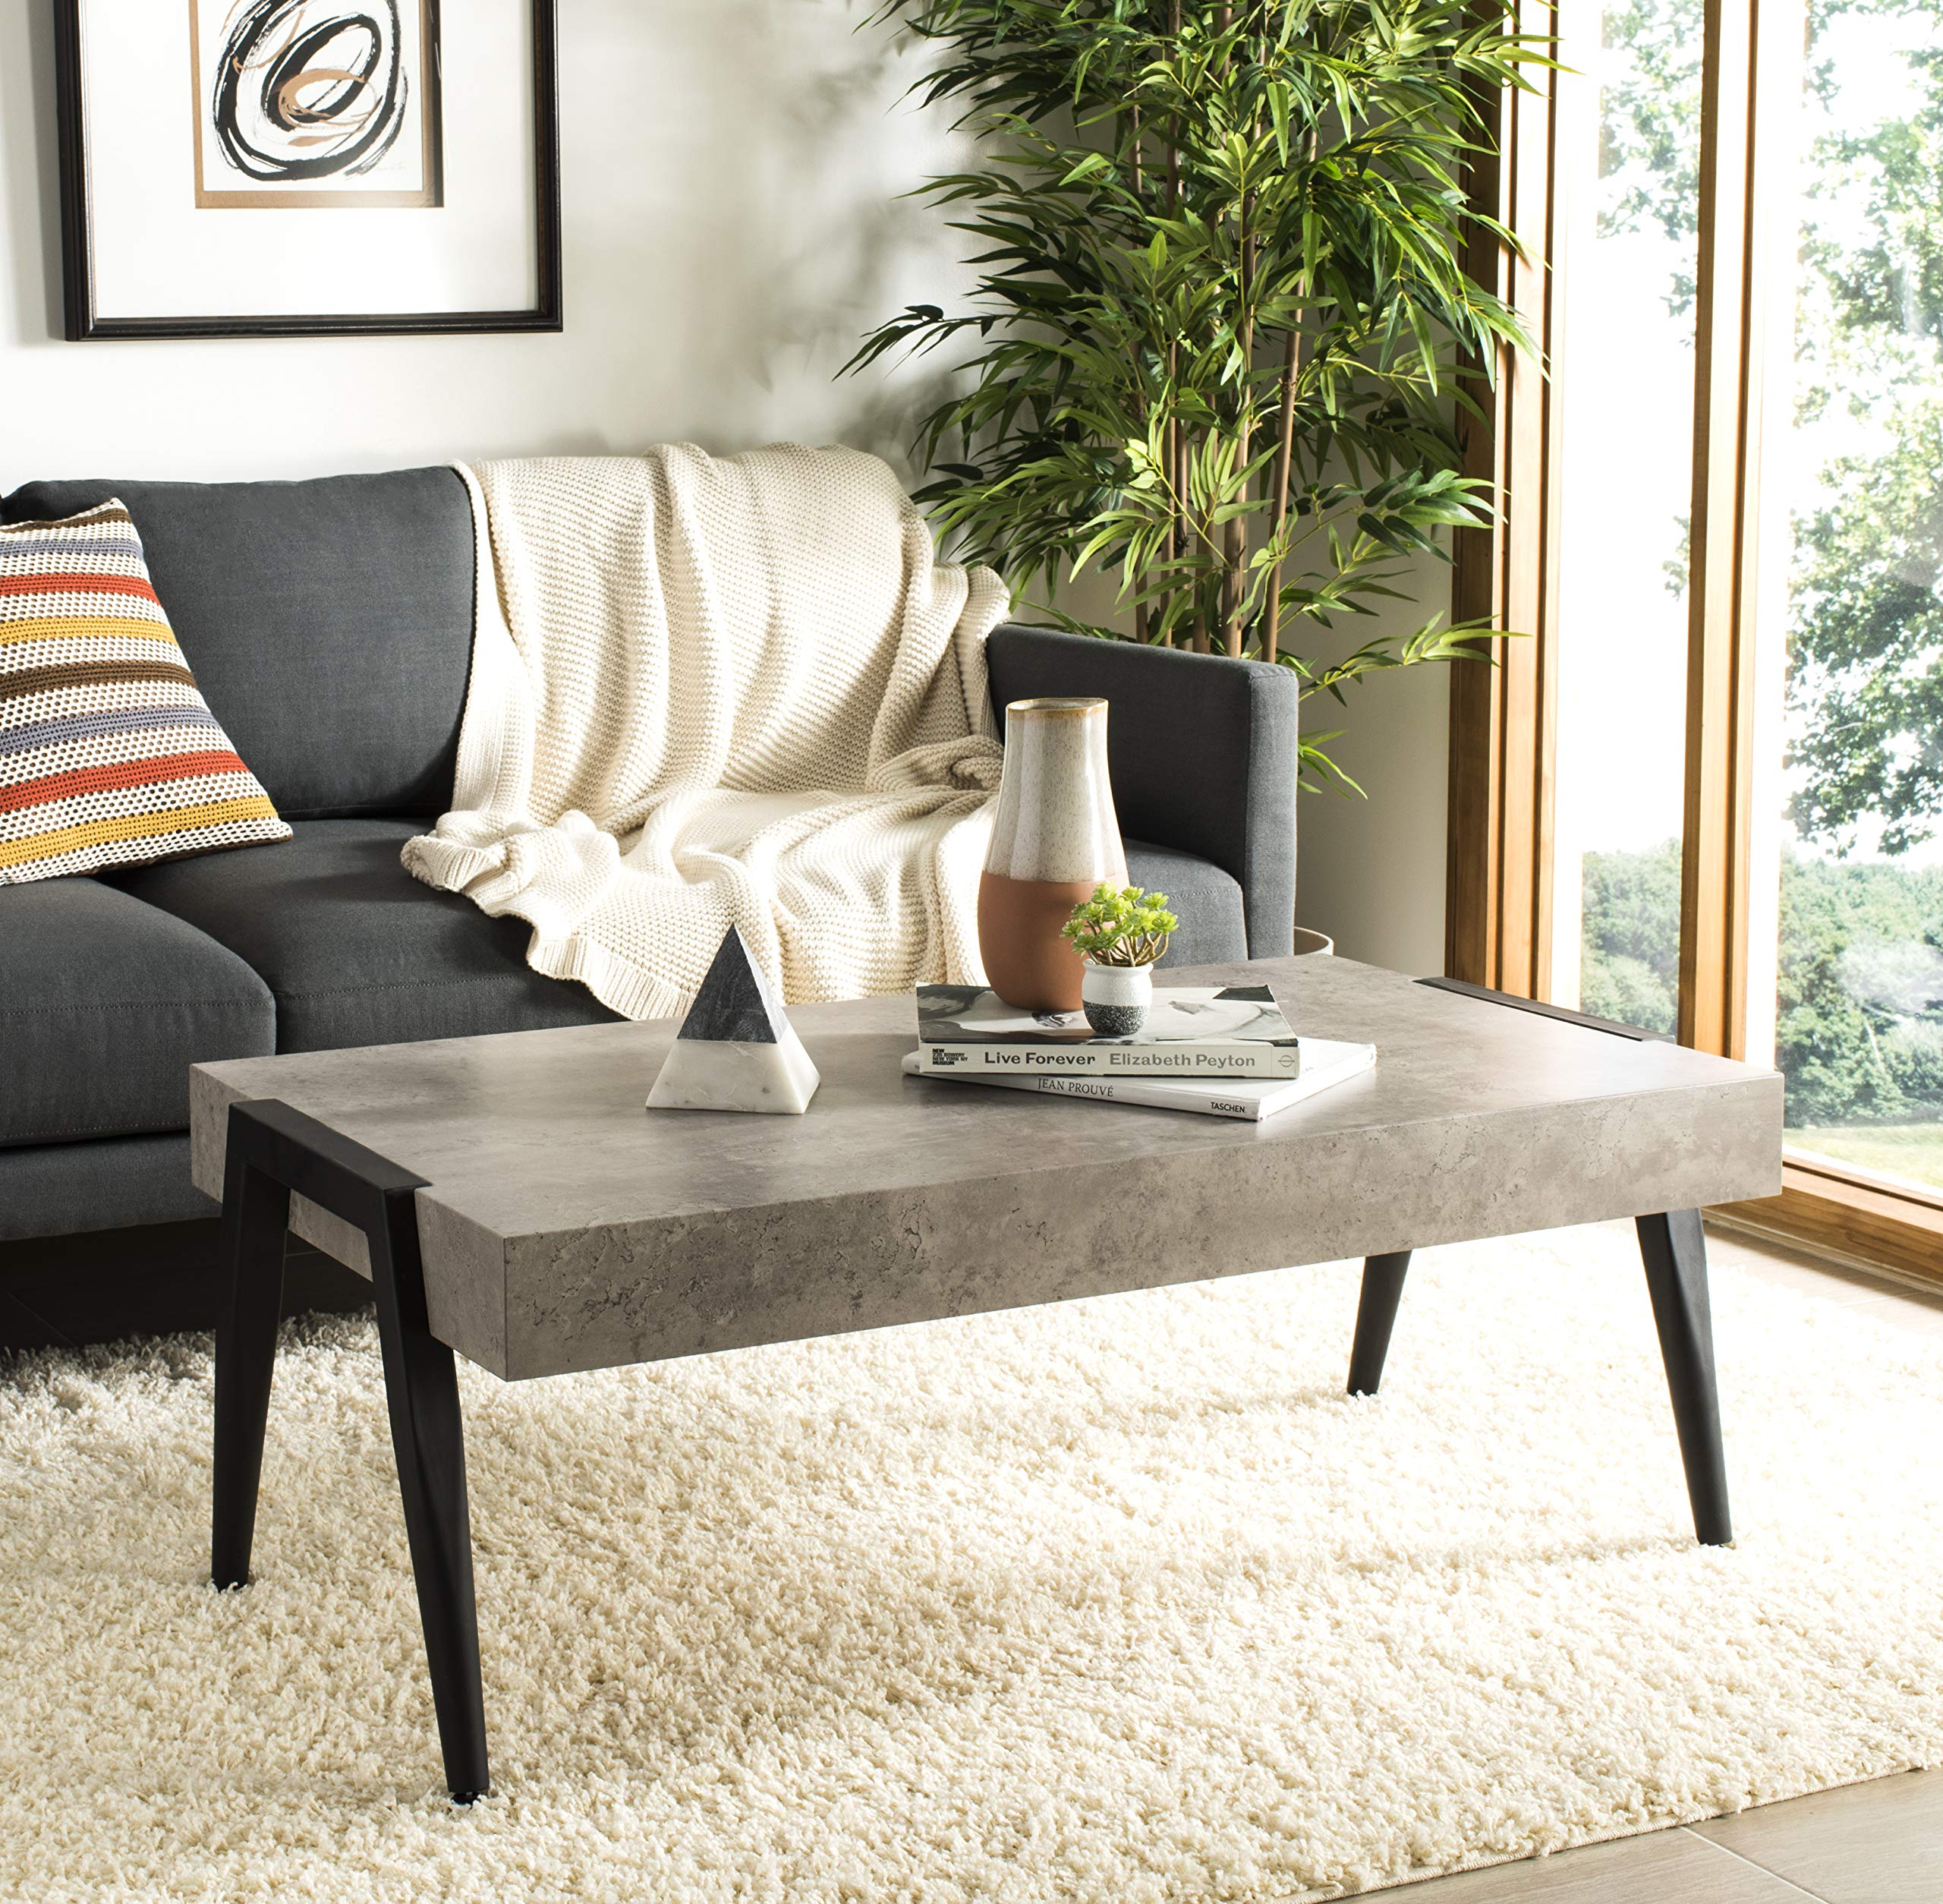 Safavieh Home Collection Cameron Light Grey and Black Rectangular Midcentury Modern Coffee Table by Safavieh